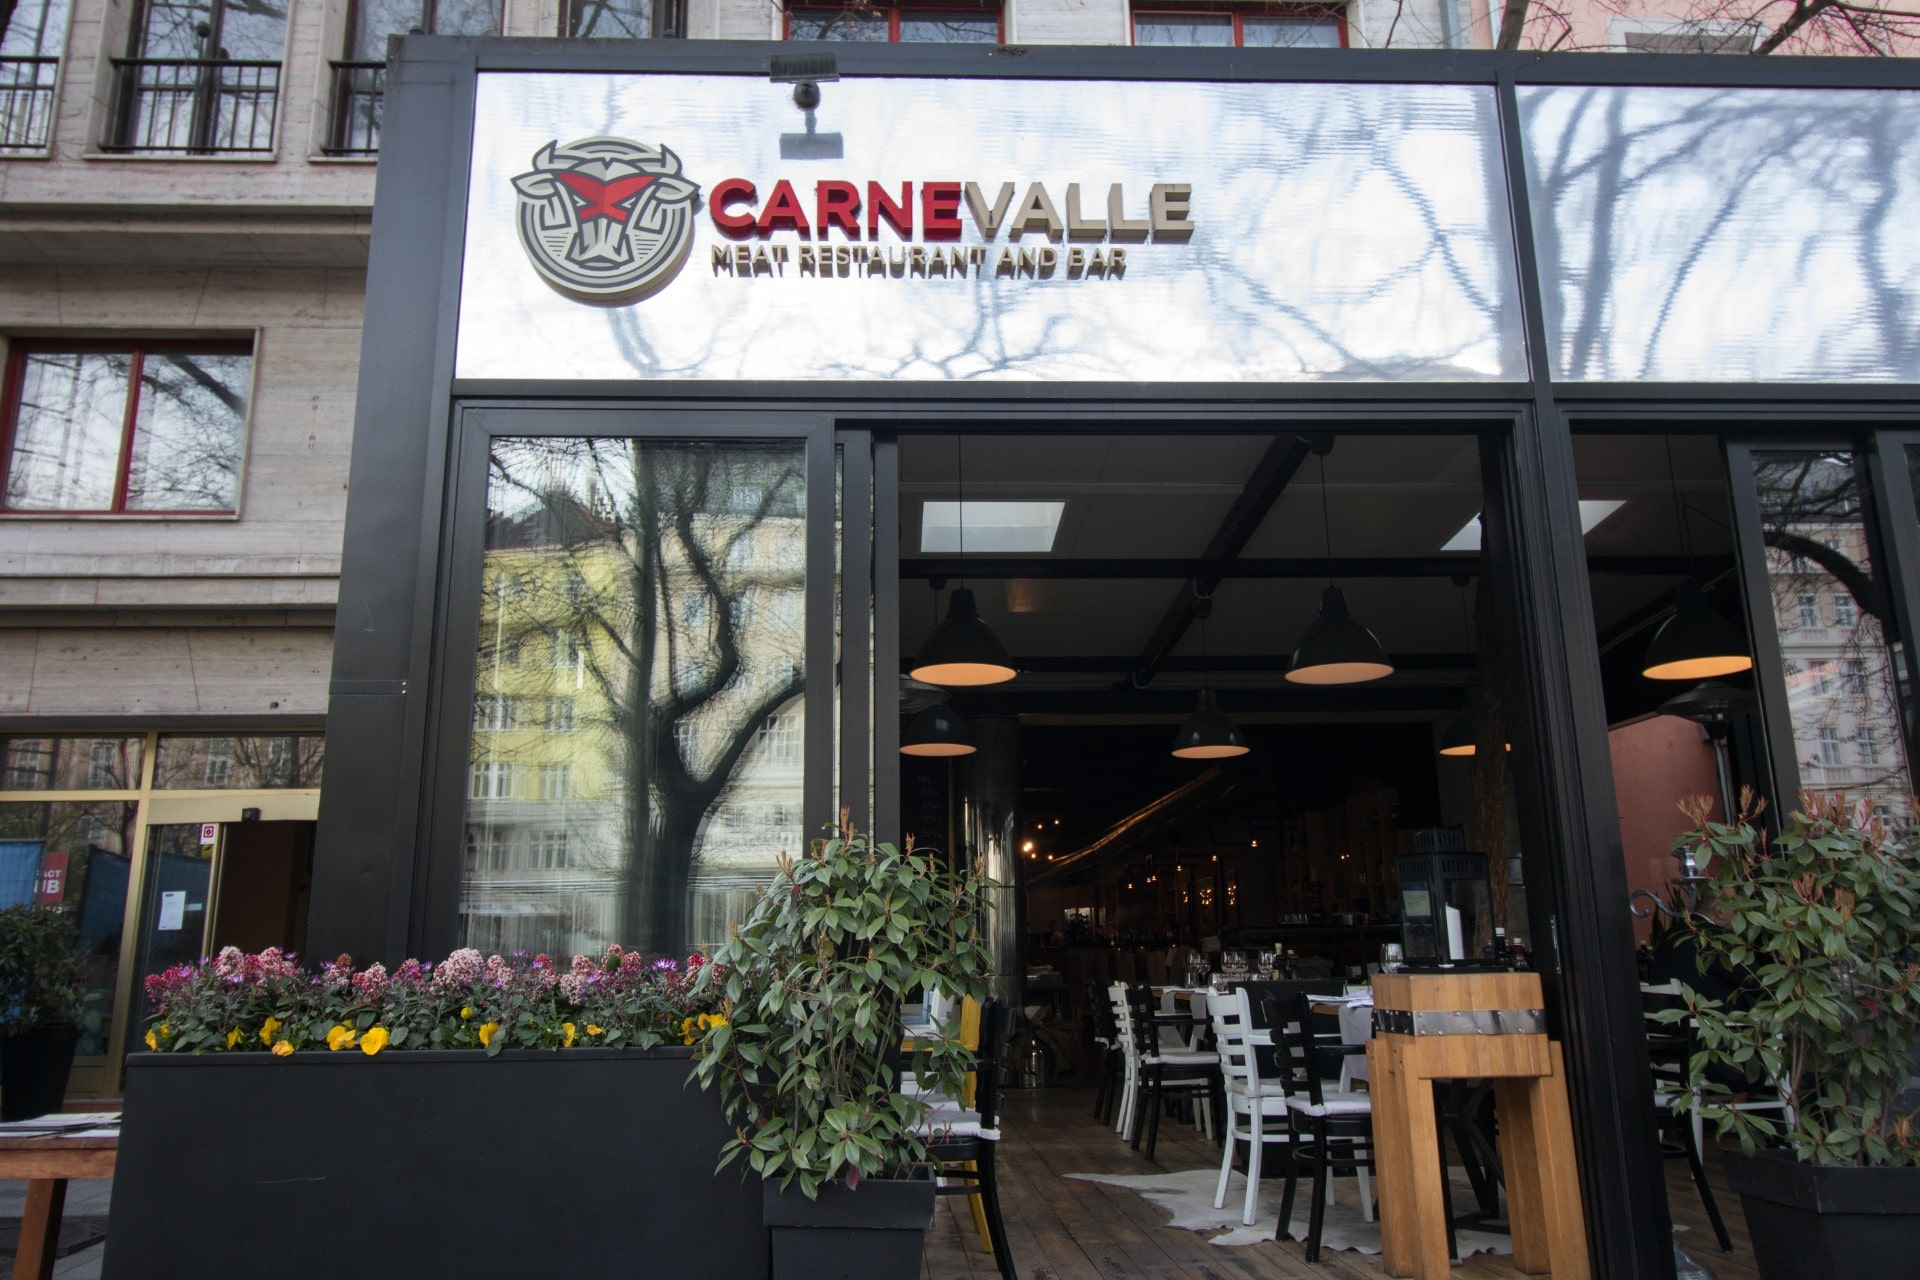 modern-restaurant-from-outside-carnevalle-meat-restaurant-and-bar